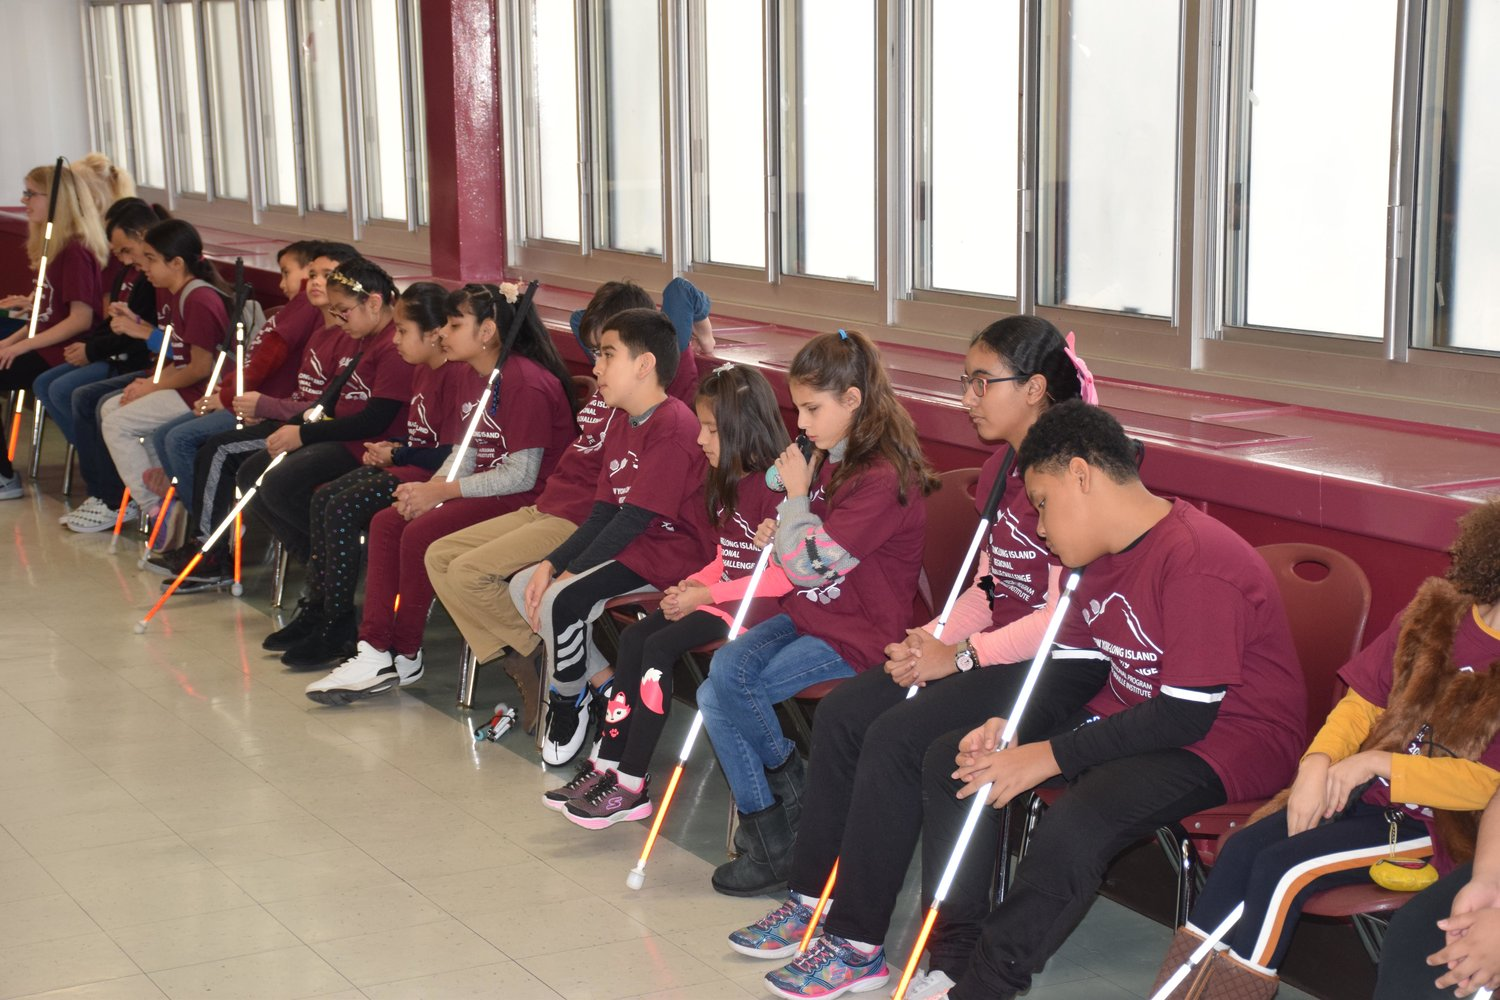 Students participated in the 12th annual Long Island Regional Braille Challenge at W.T. Clarke High School on Feb. 2.